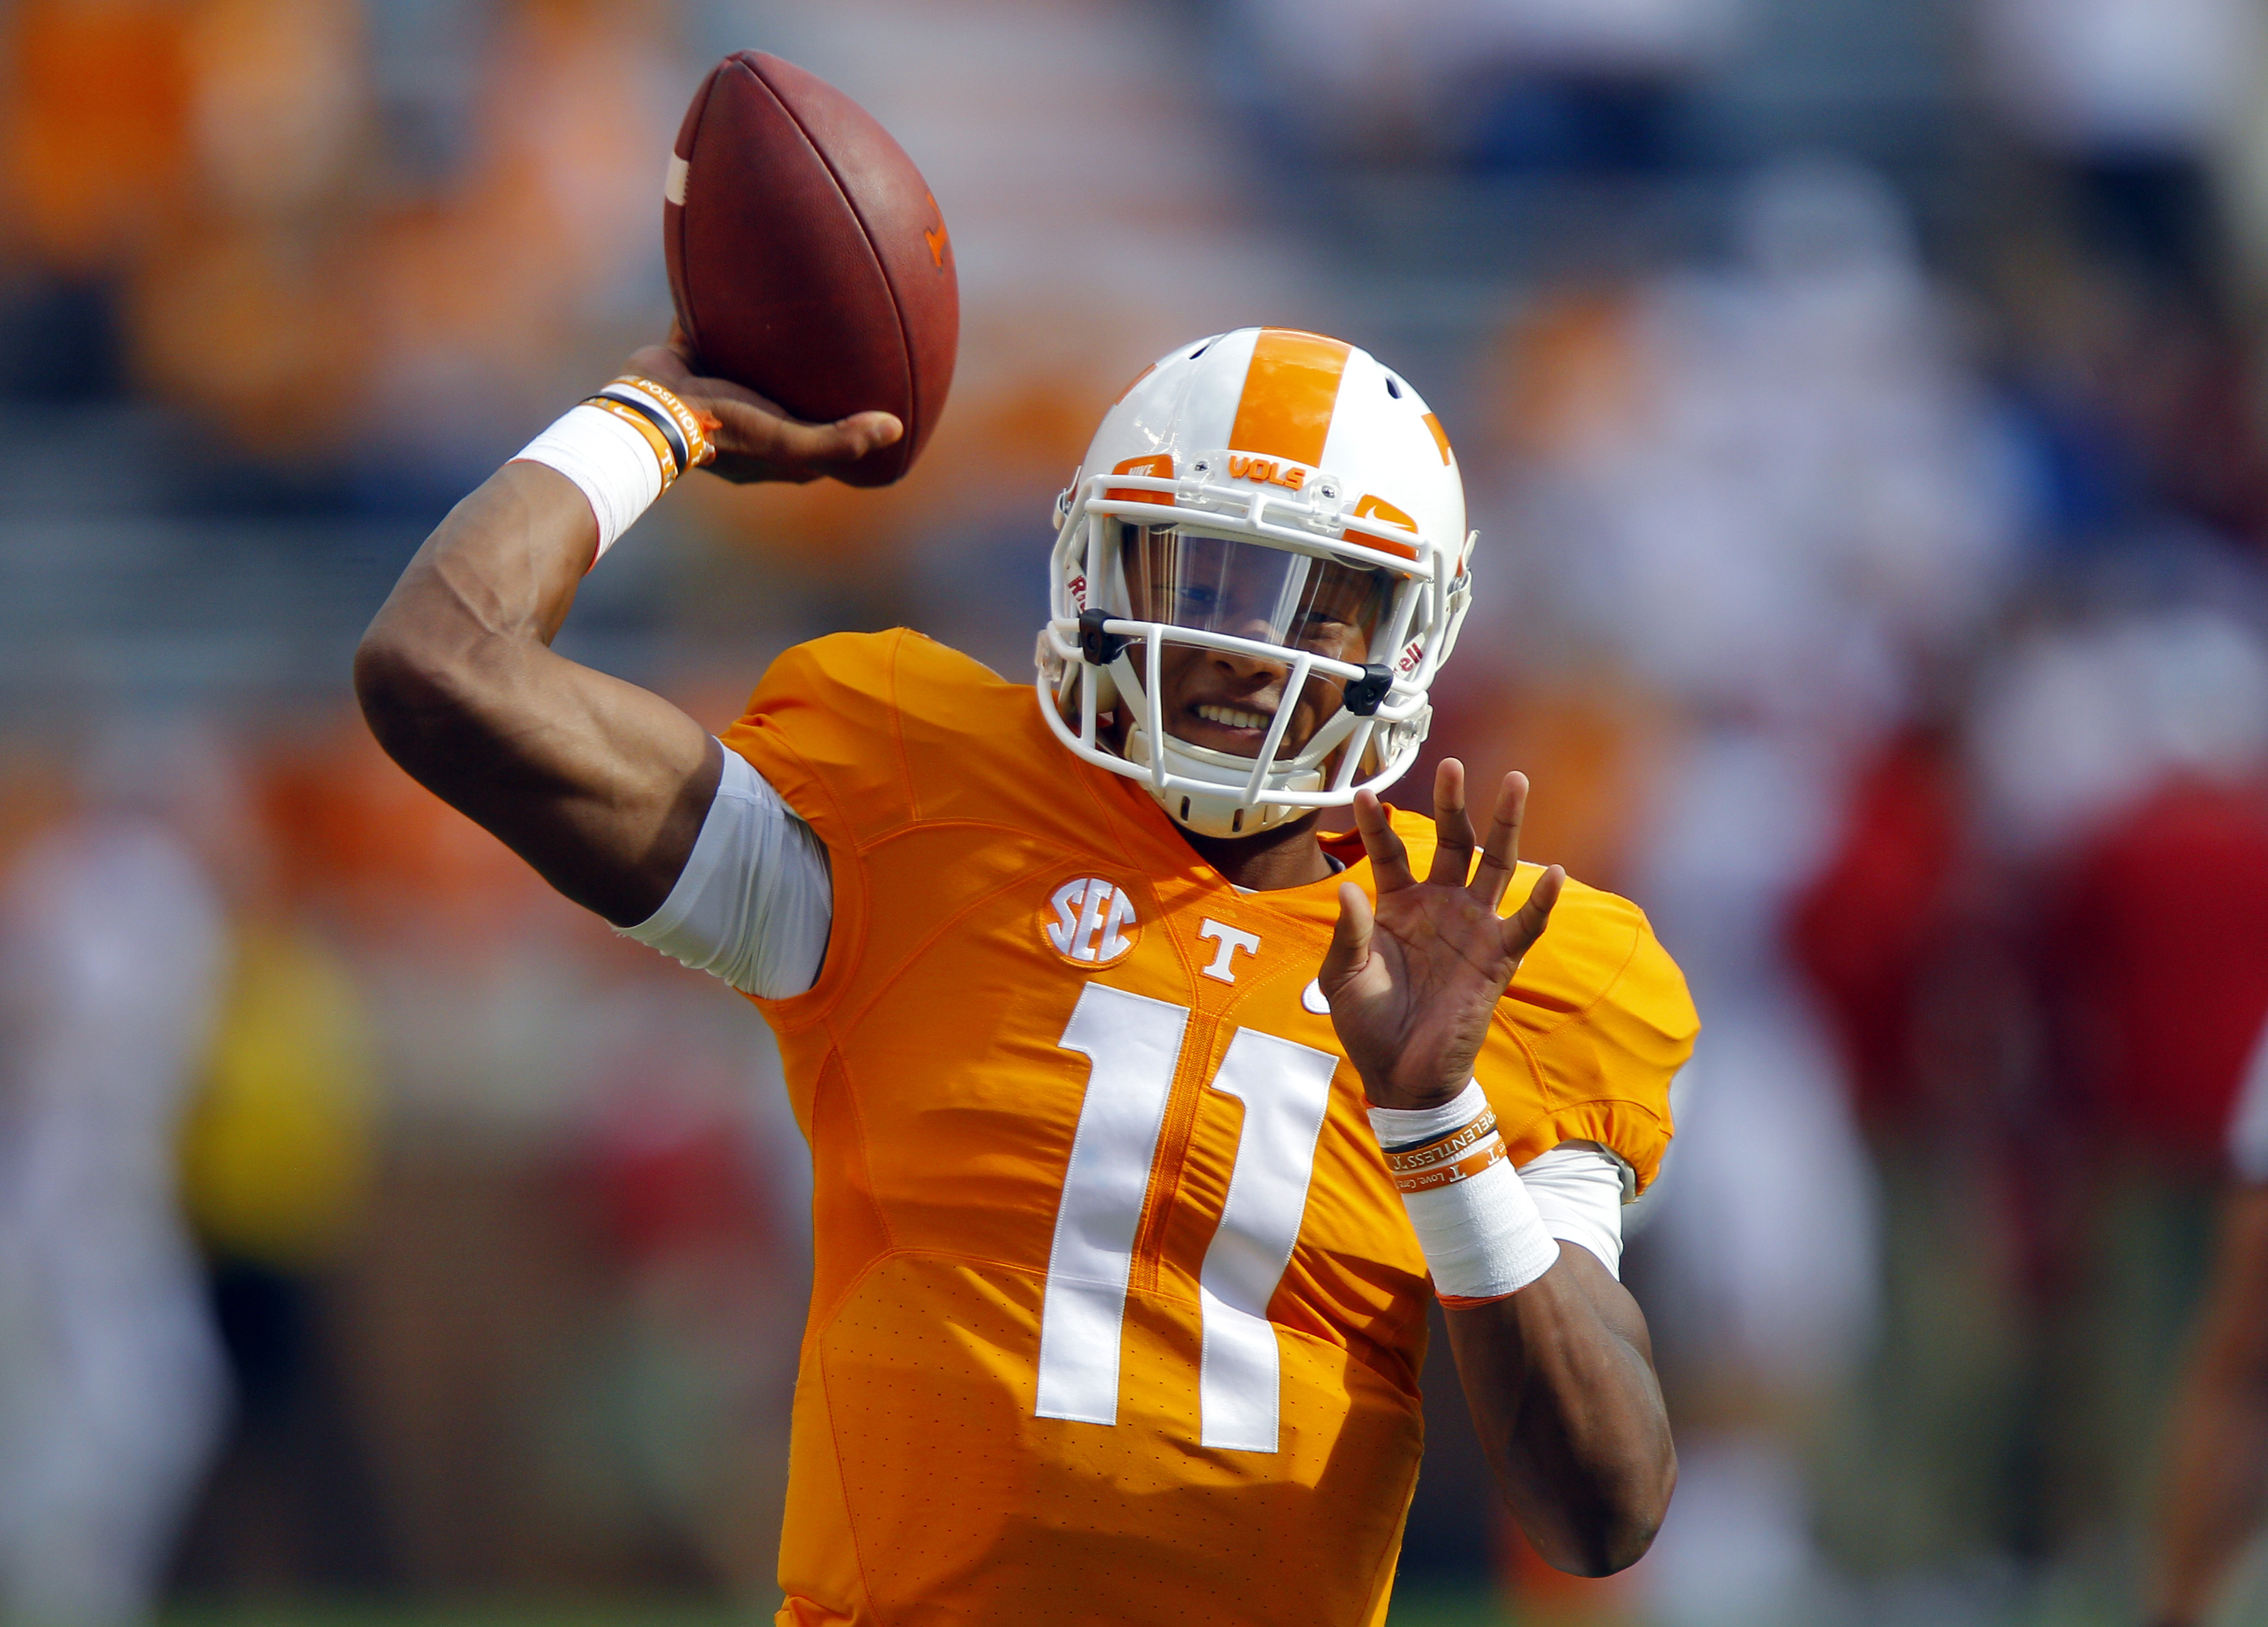 Tennessee quarterback Joshua Dobbs (11) warms up before the start of an NCAA college football game against Oklahoma, Saturday, Sept. 12, 2015 in Knoxville, Tenn. (AP Photo/Wade Payne)